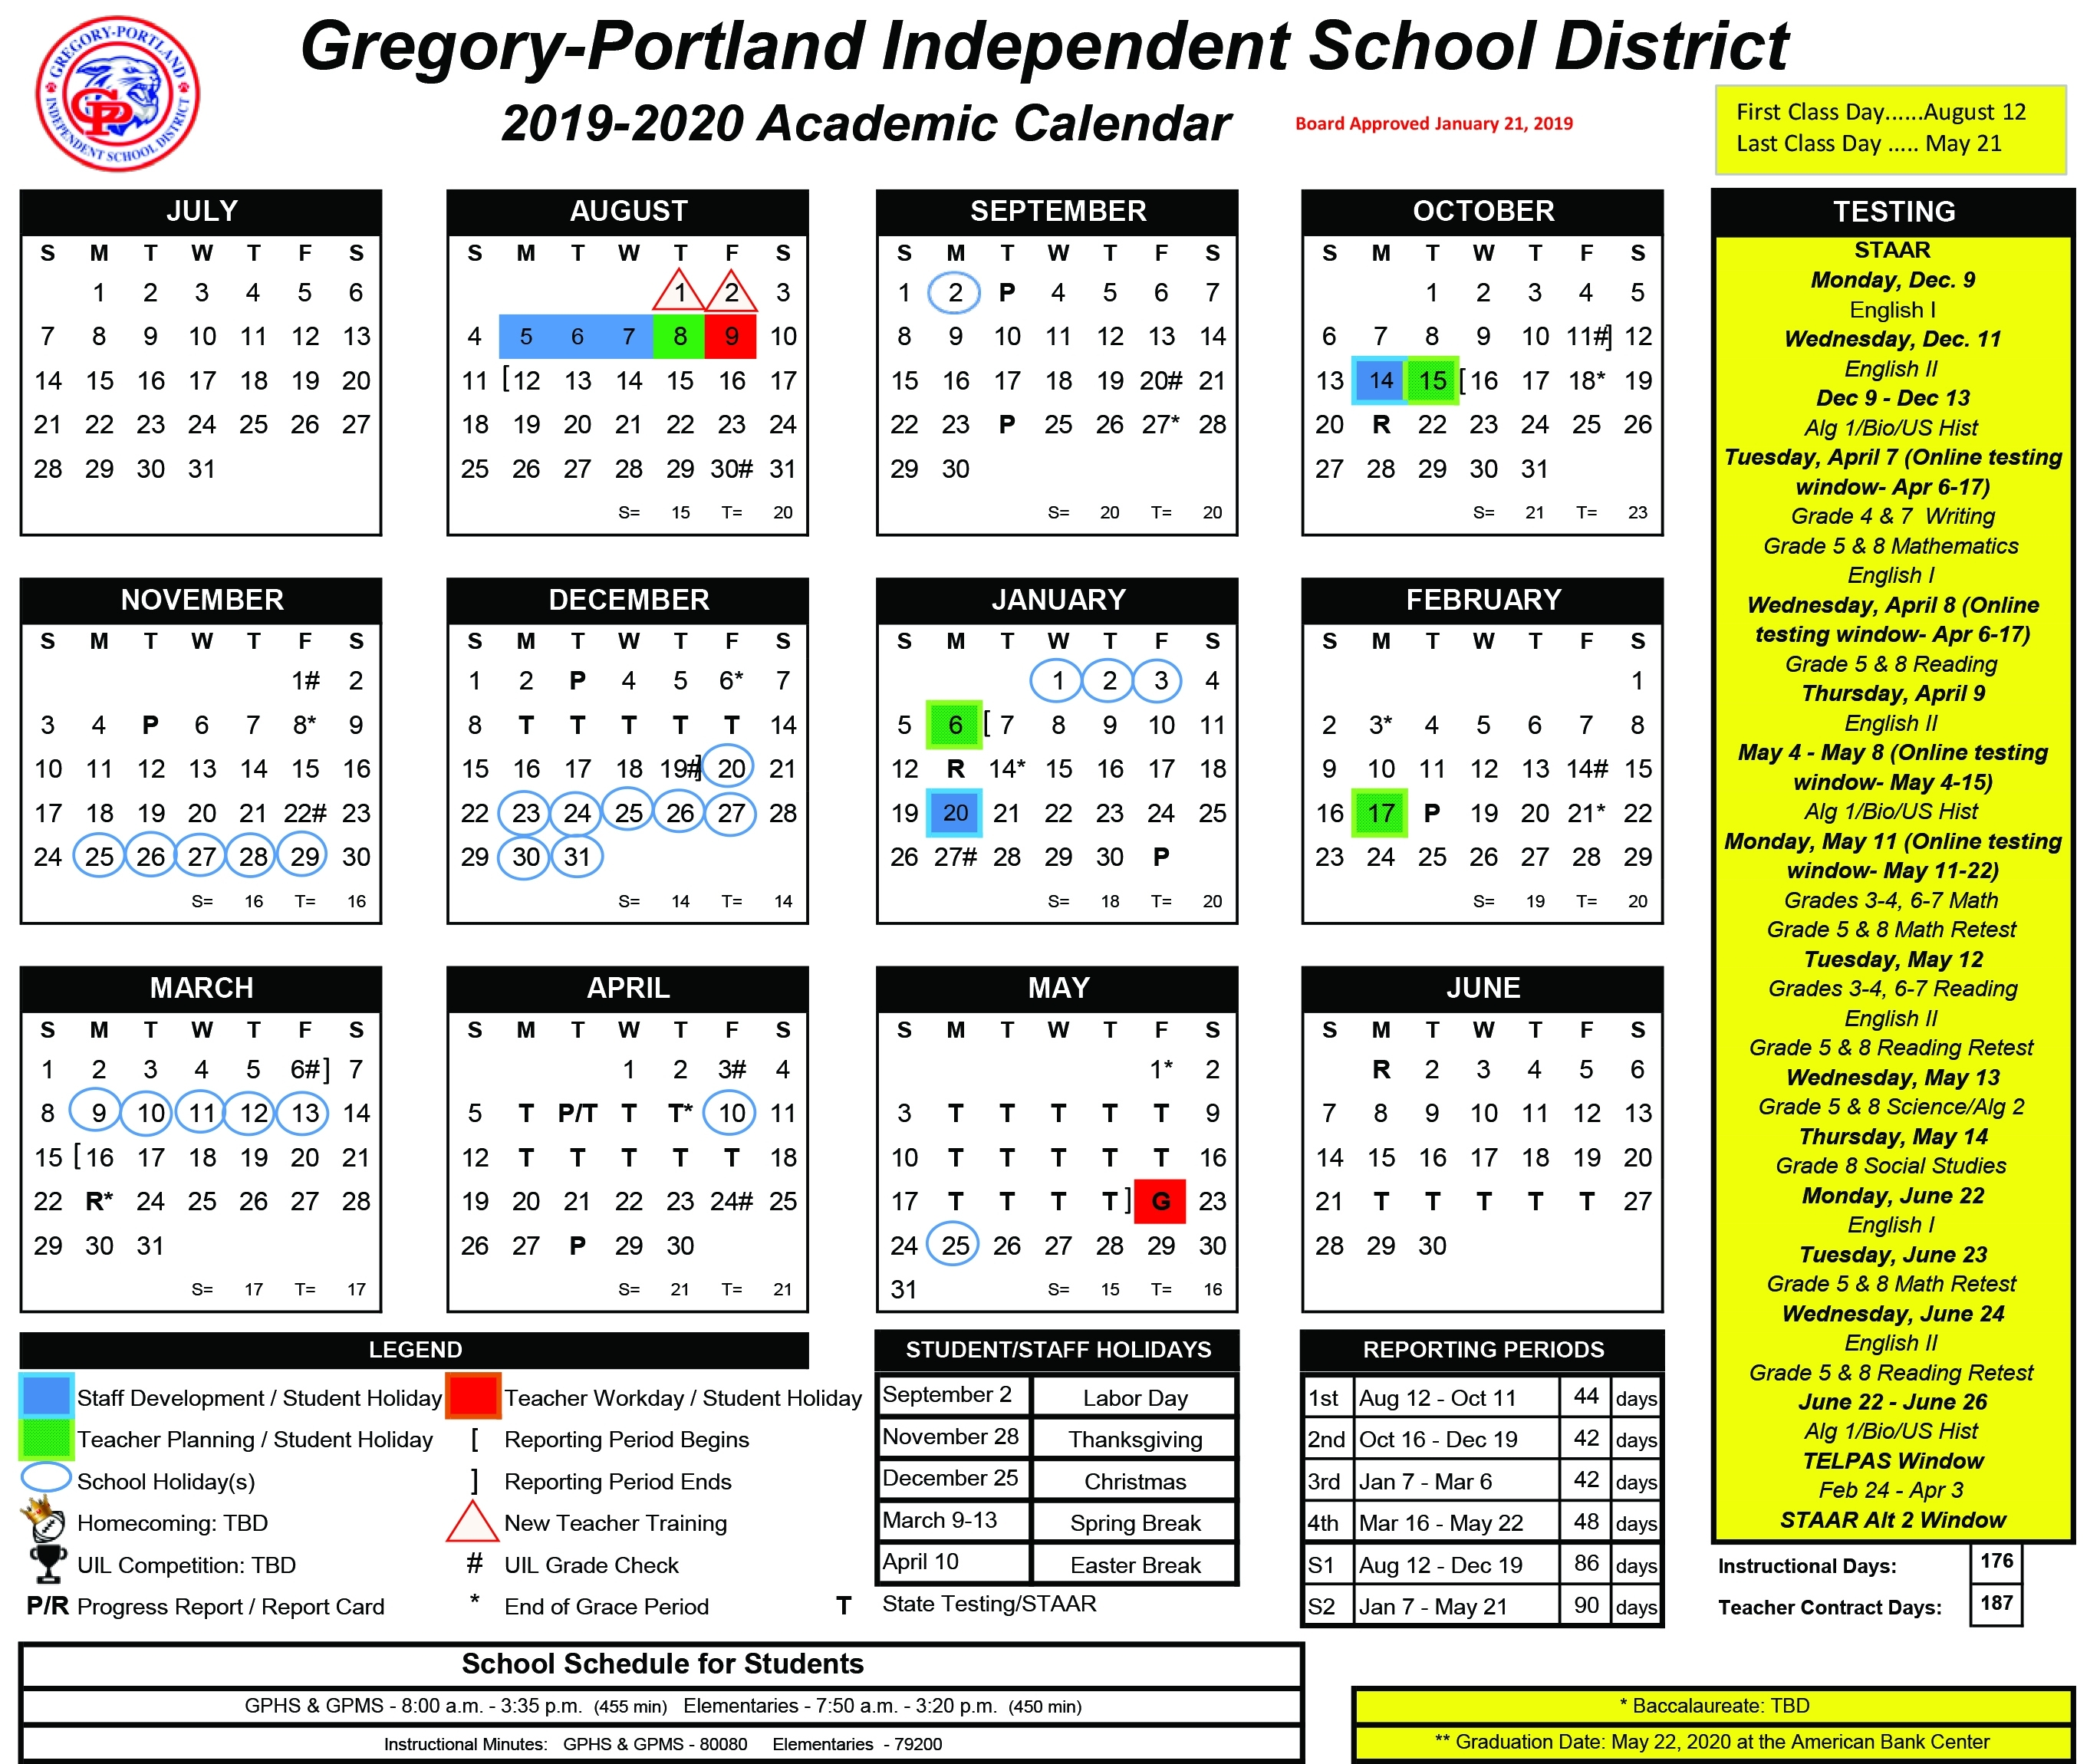 District Calendar, 2019-20 - Gregory-Portland Independent School for Sfasu School Schedule 2019 2020